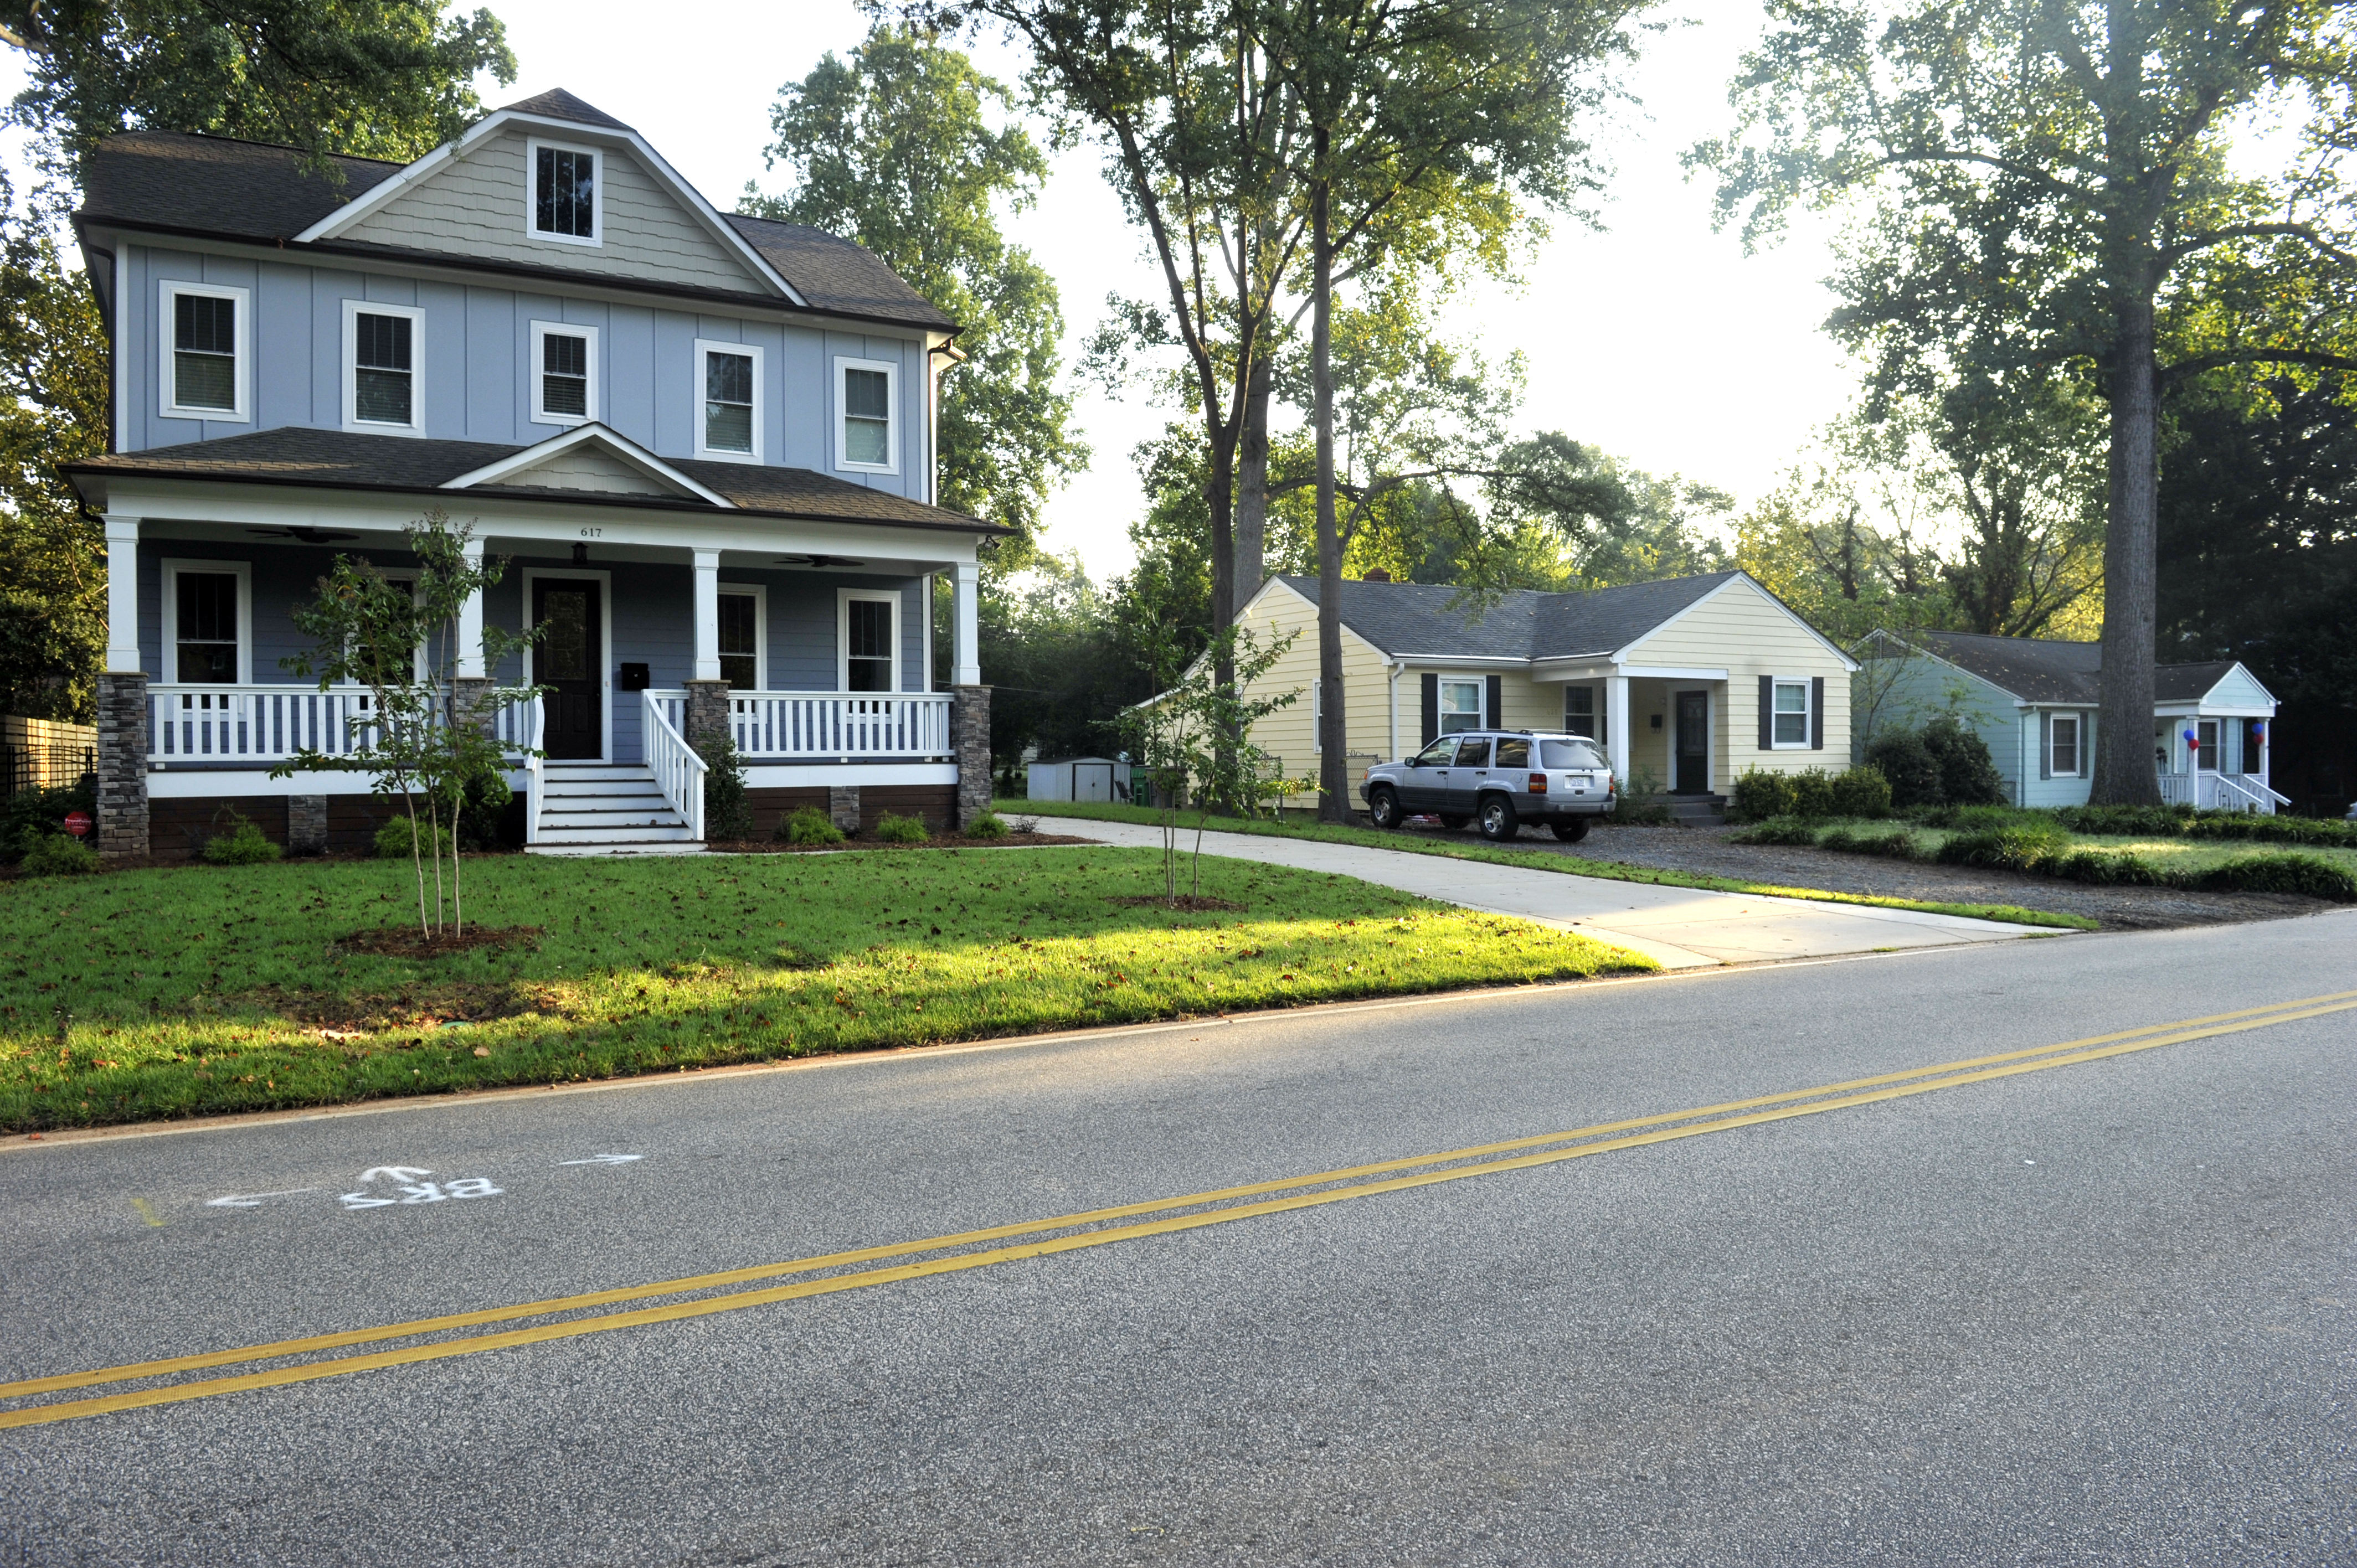 Homes in Dilworth, Charlotte NC